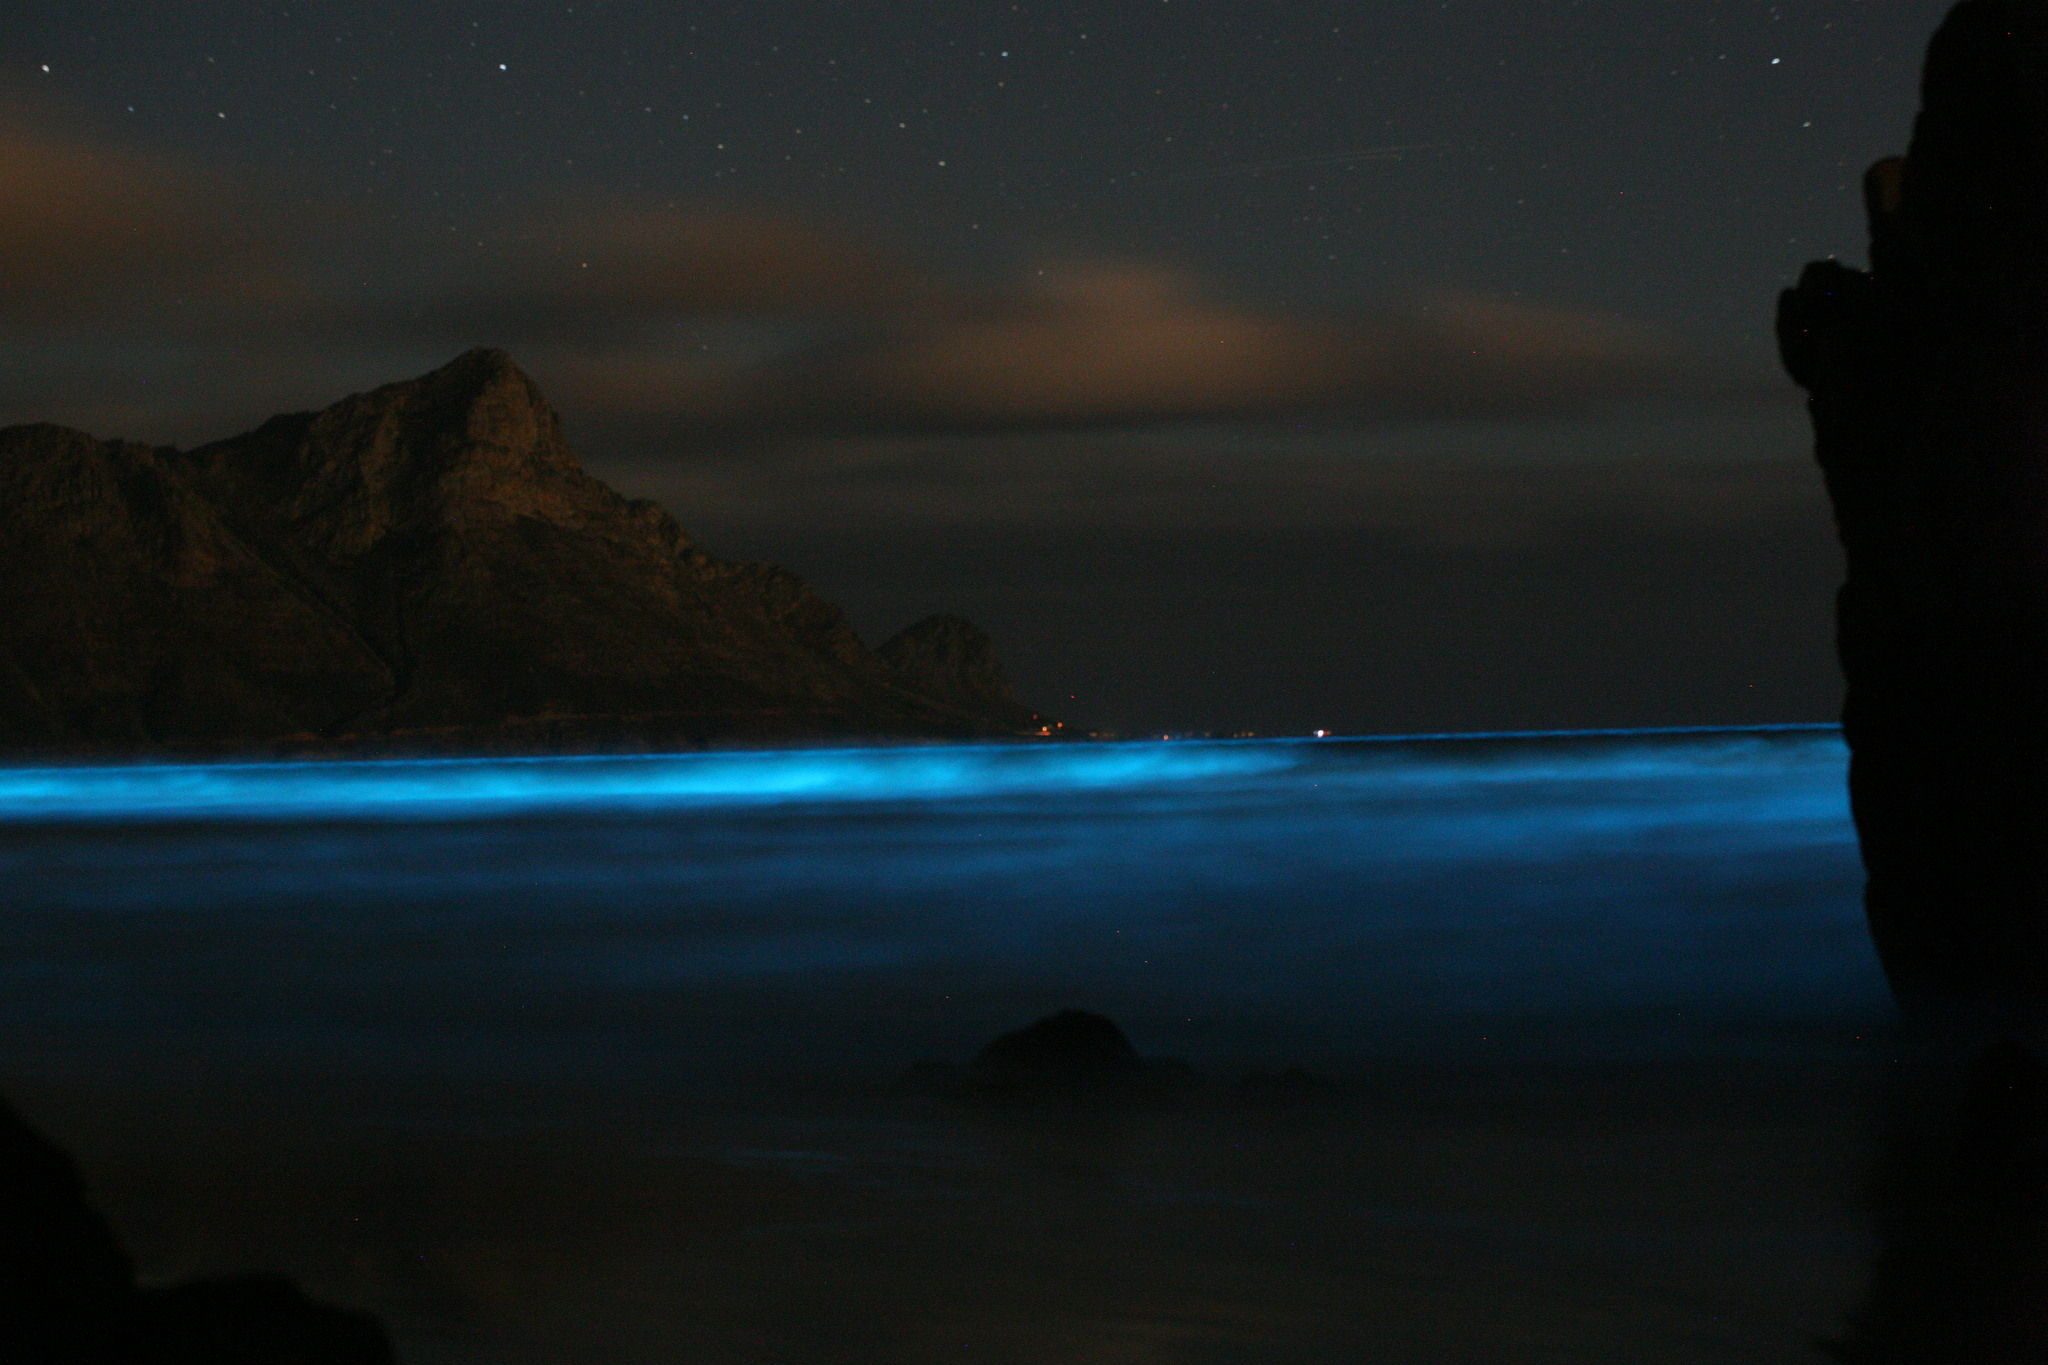 A blue tide caused by an abundance of noctilucent algae. Credit: Bruce Anderson (University of Stellenbosch), bmc_ecology/Flickr, CC BY 2.0